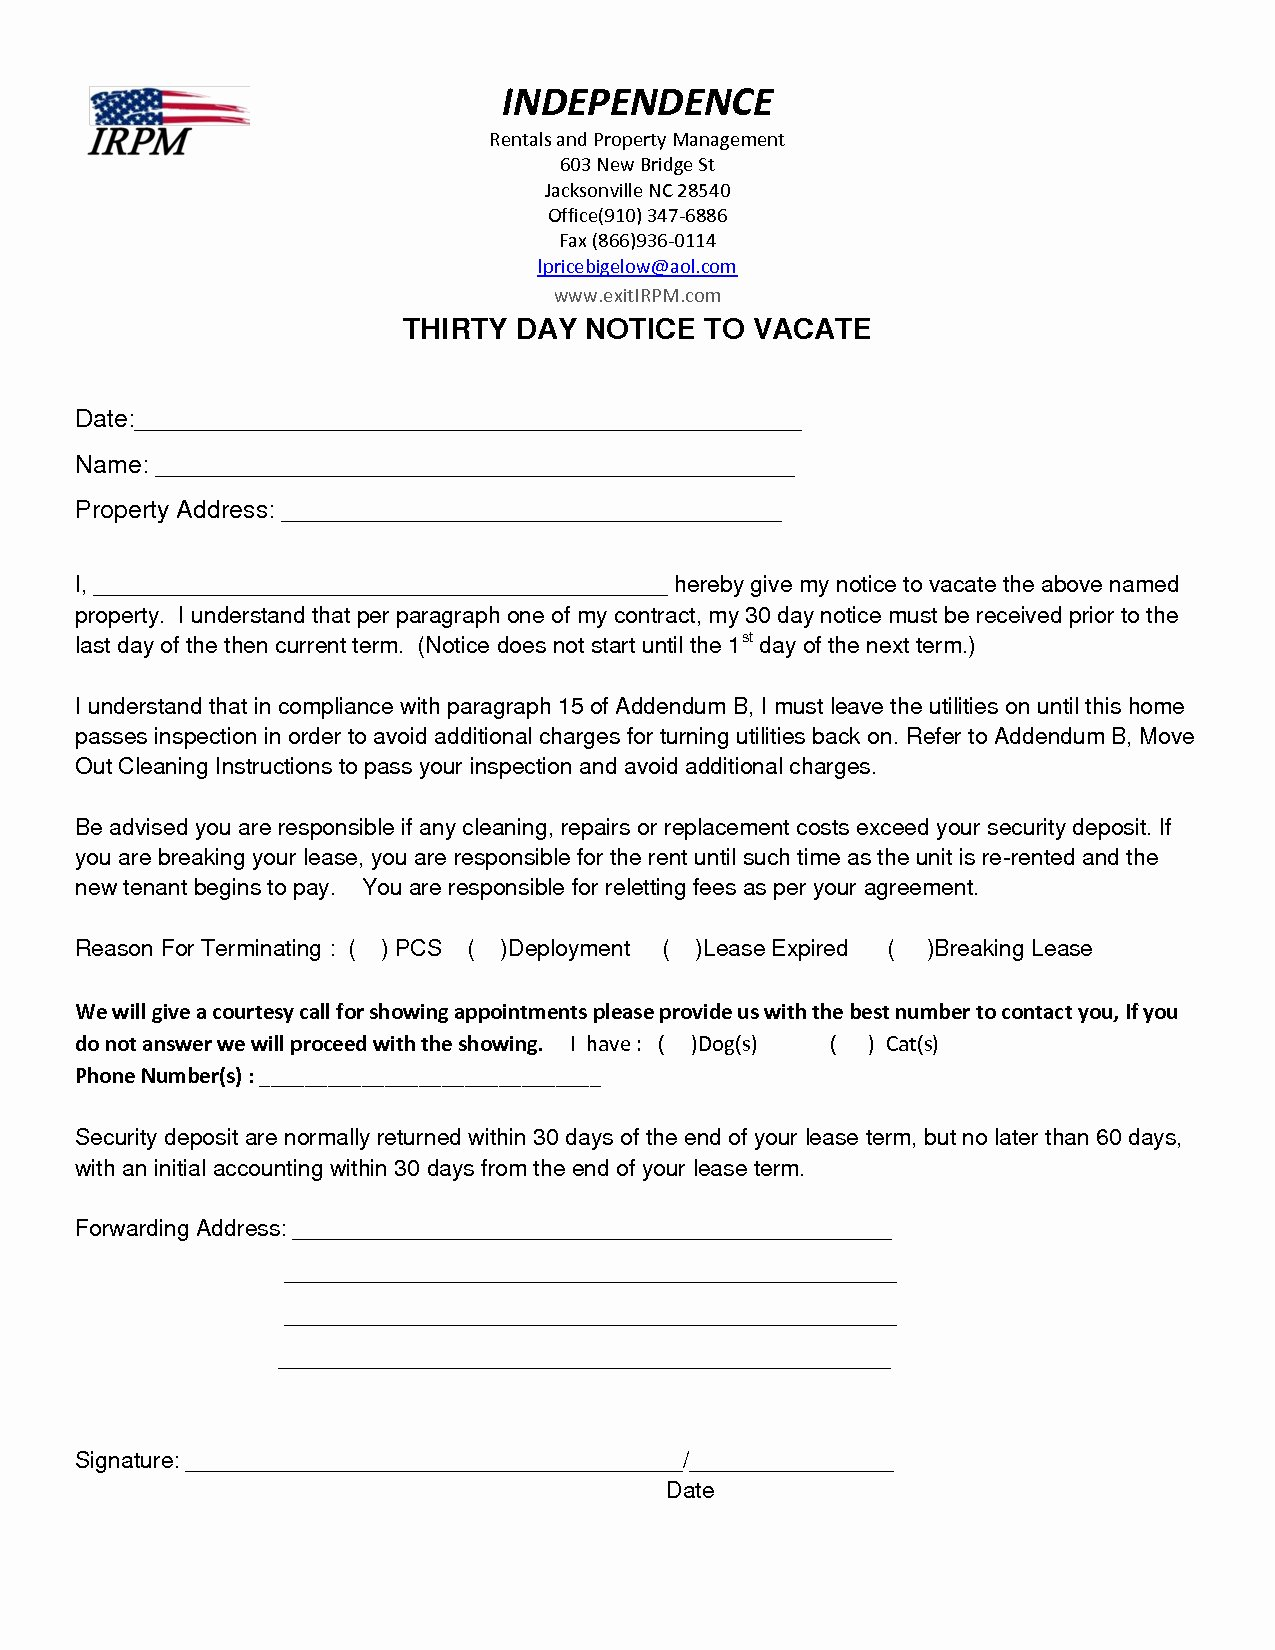 Notice to Vacate Letter Template Beautiful Notice to Vacate Apartment Letter Template Samples